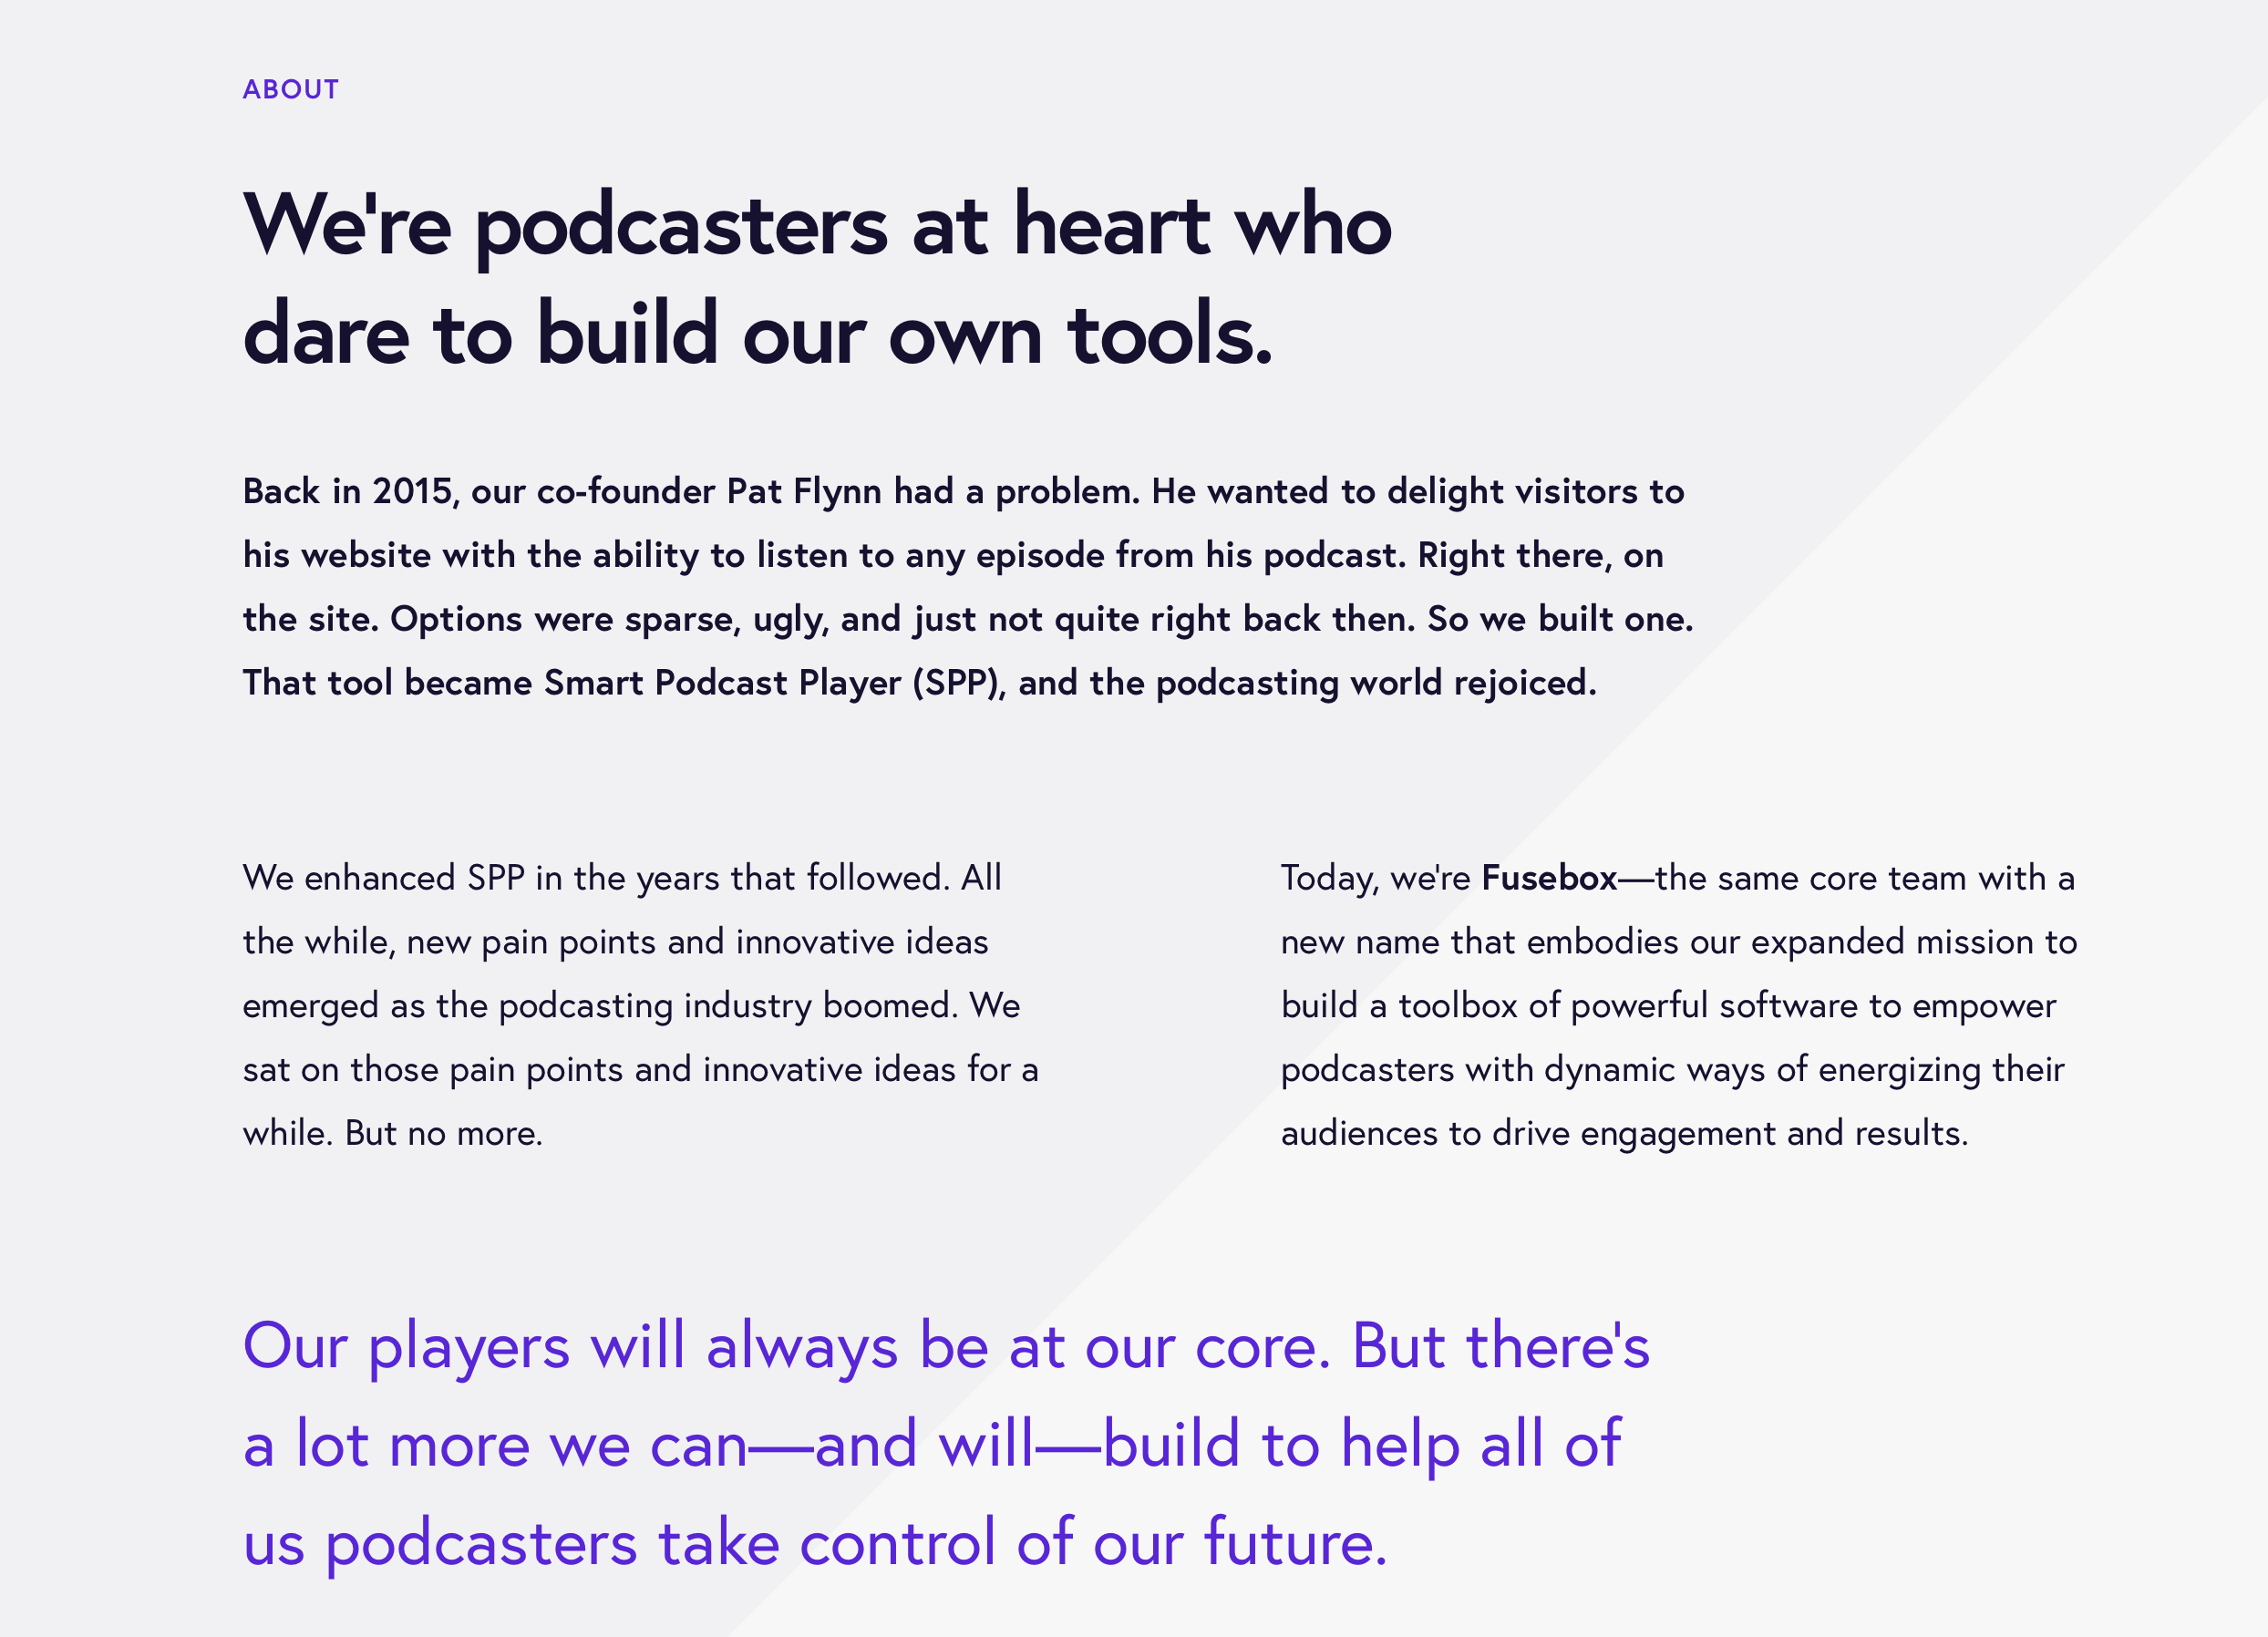 smart-podcast-player-is-now-fusebox